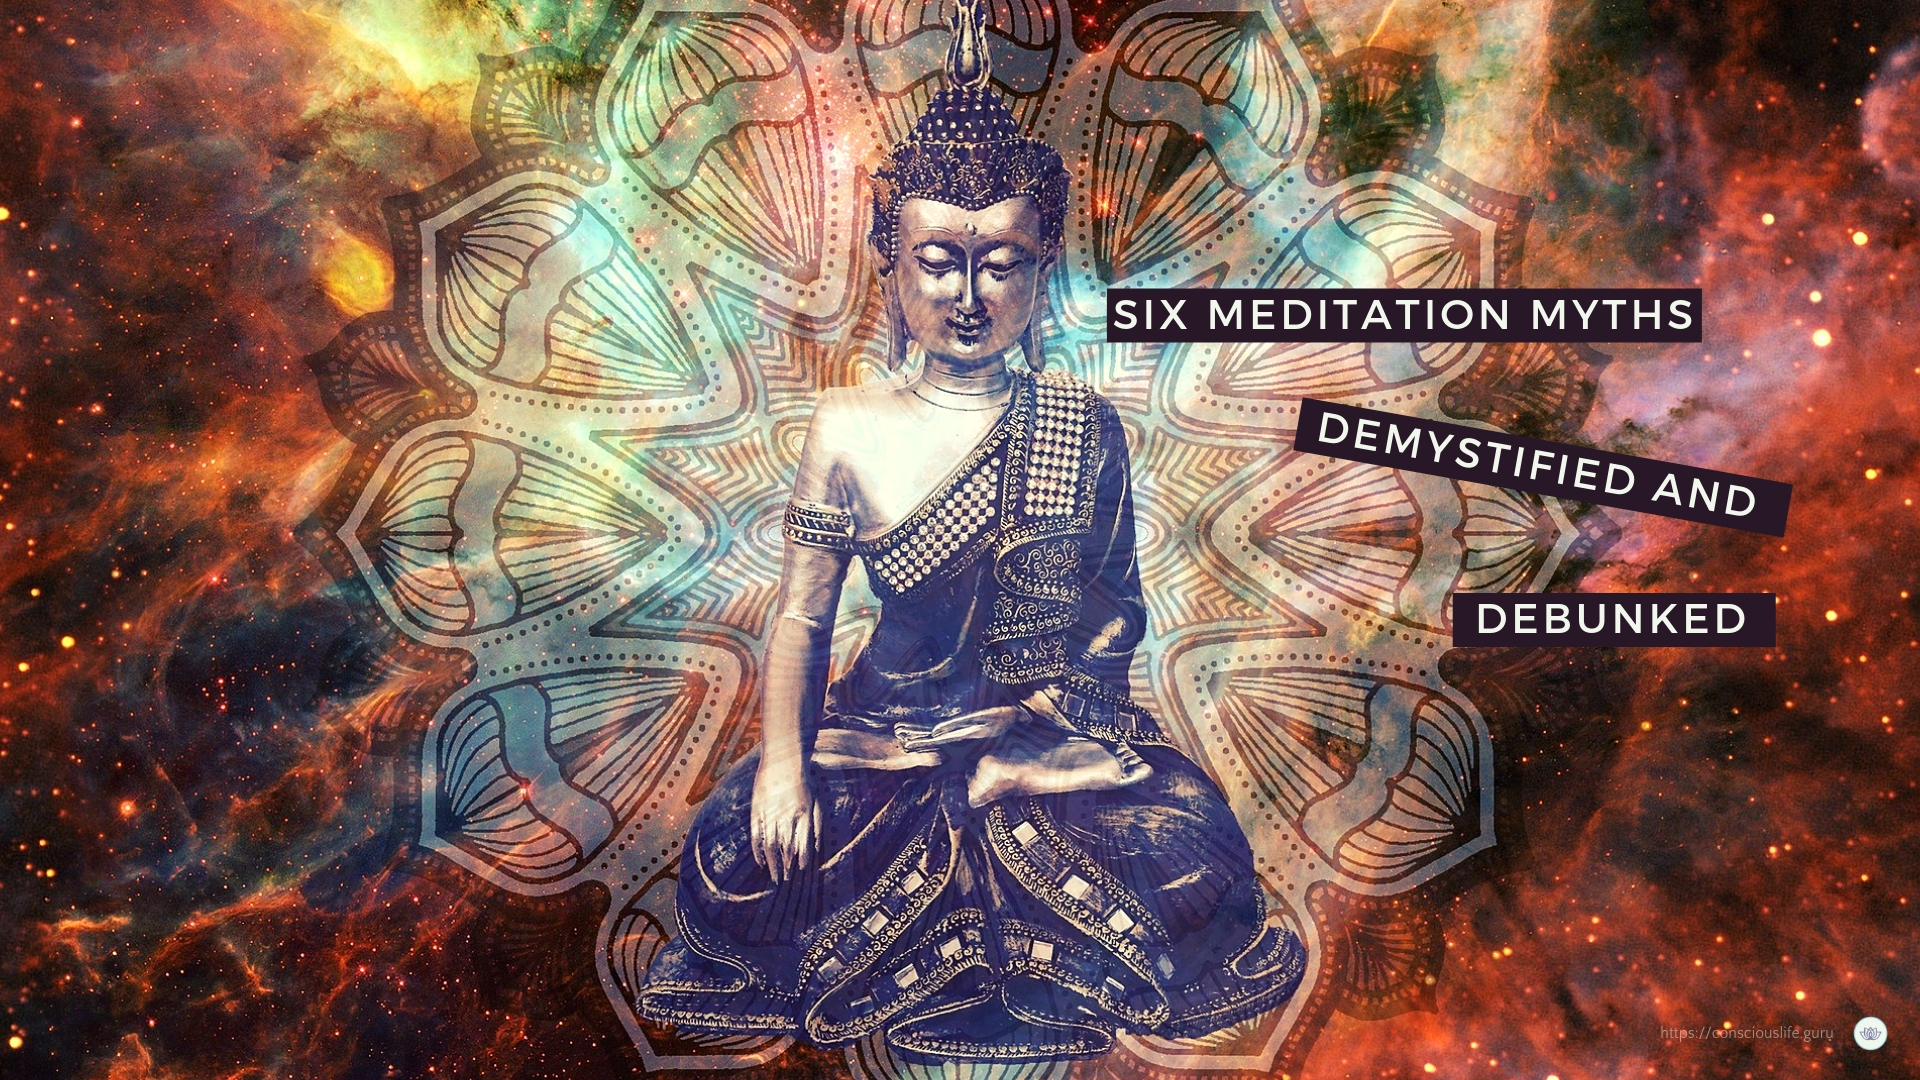 Six Meditation Myths Demystified and Debunked